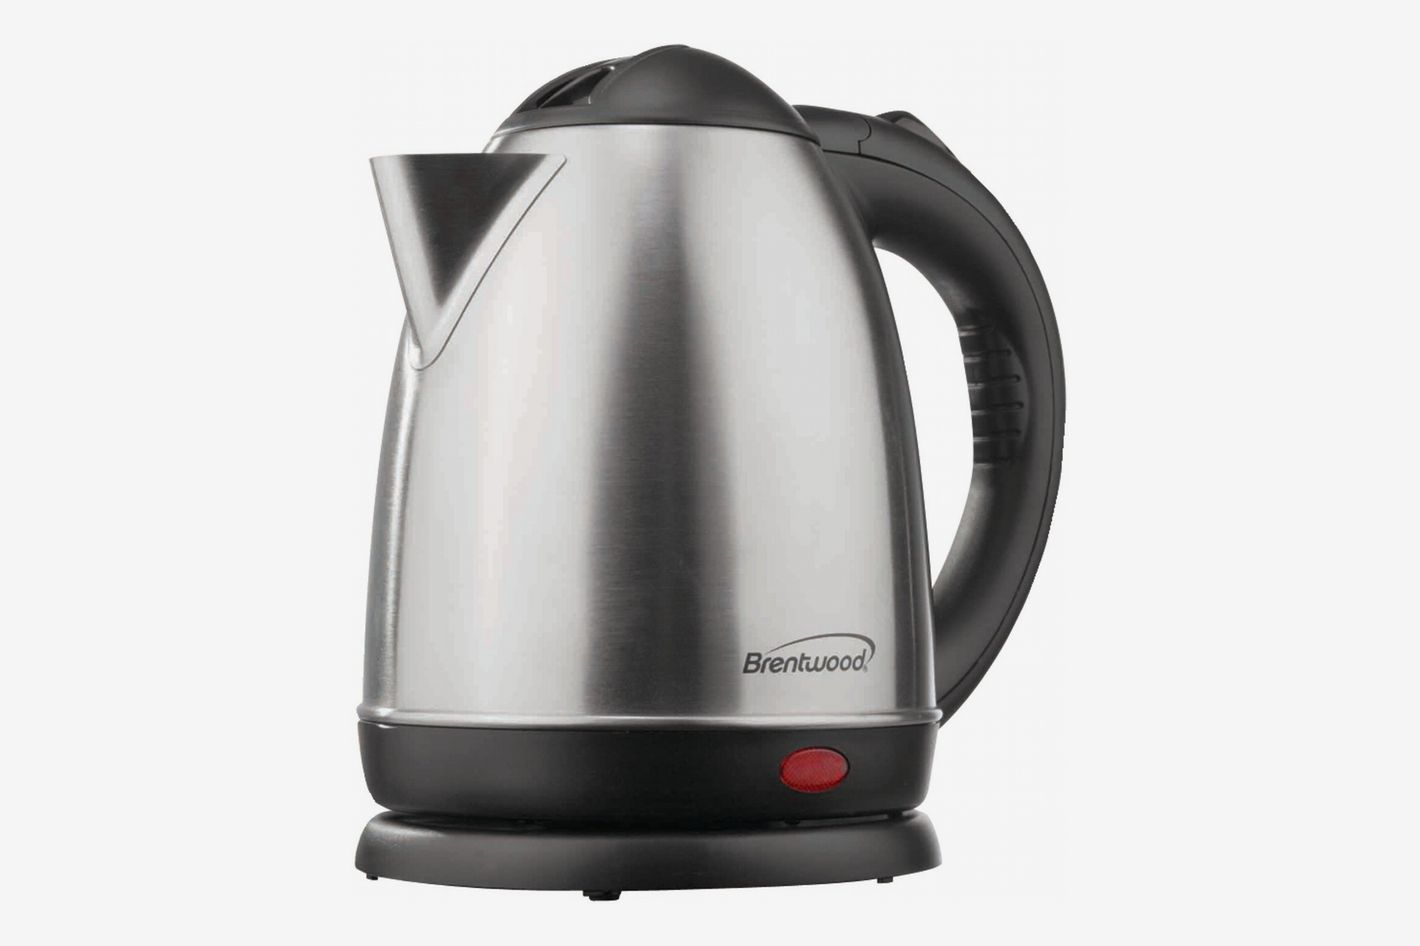 Brentwood KT-1780 1.5L Stainless-Steel Cordless Electric Kettle